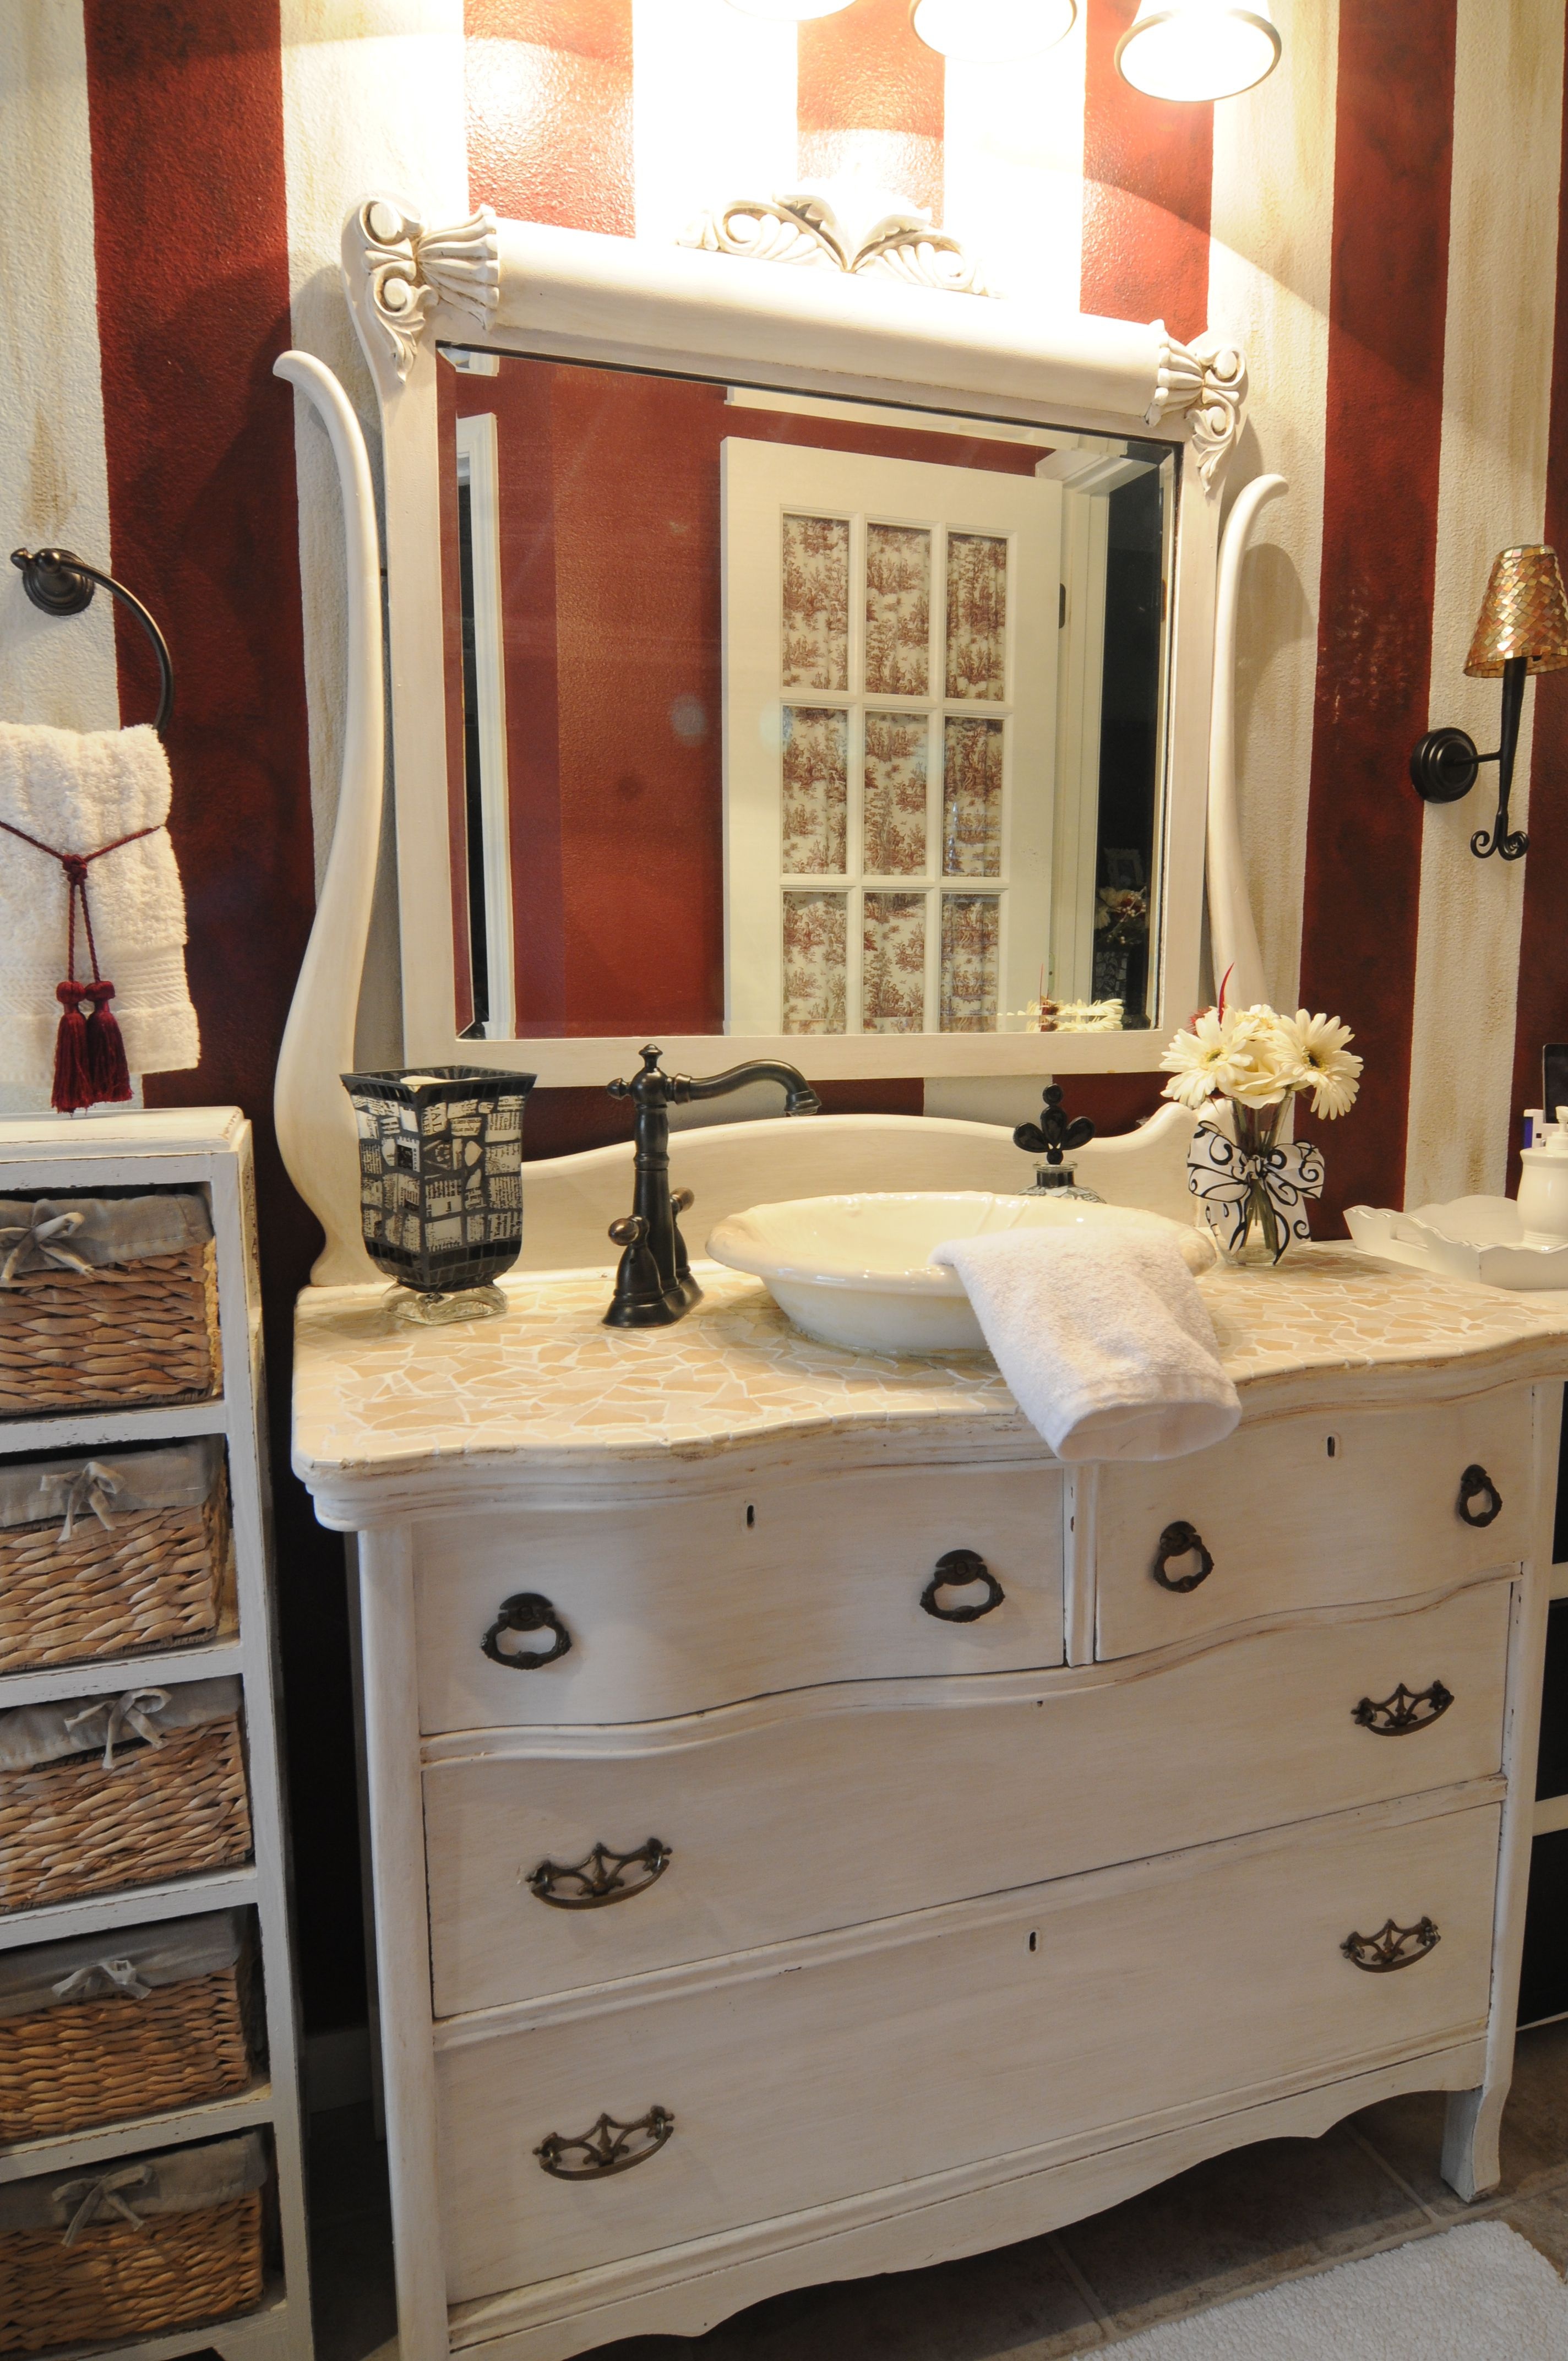 25 creative bathroom vanities made from dressers eyagcicom for Old dresser made into bathroom vanity